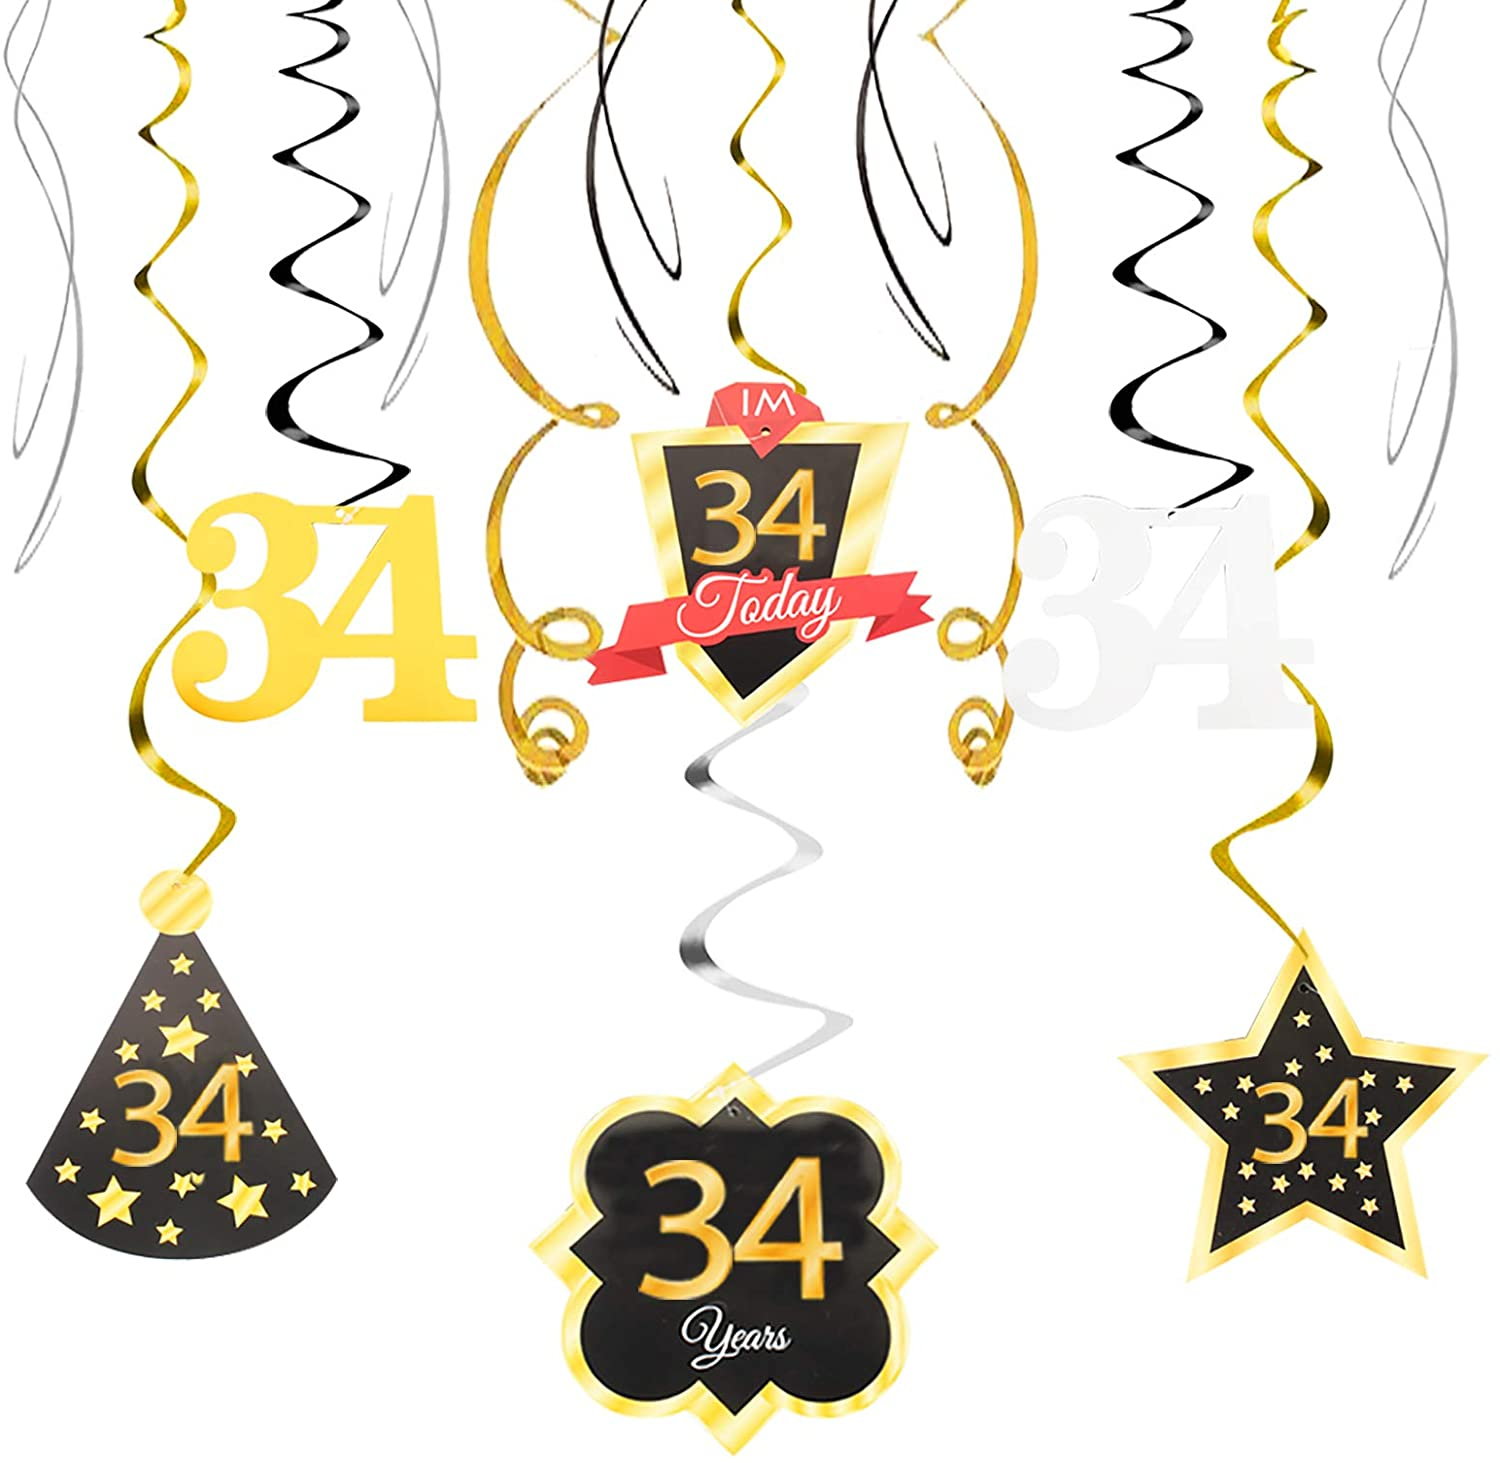 34 Birthday Decoration Happy 34th Birthday Party Silver Black Gold Foil Hanging Swirl Streamers I'm Thirty-four Years Old Today Birthday Hat Gold Star Ornament Party Present Supplies